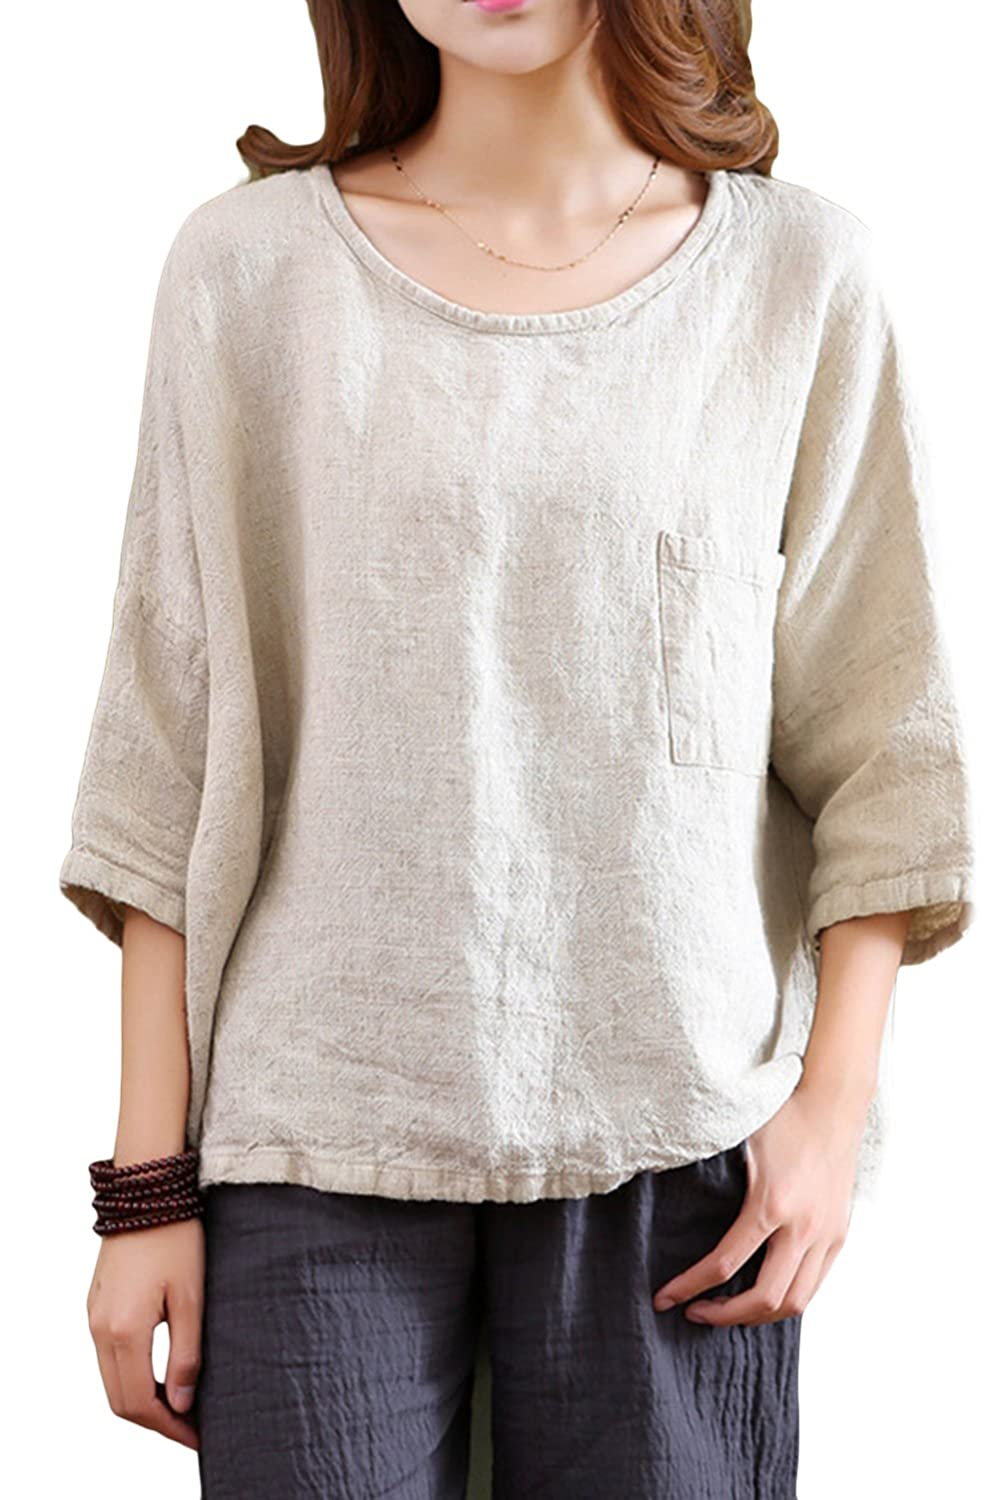 c40a73ed1aa8 Asher Women s Essential Casual Loose Solid Cotton Linen Tops Blouses (One  Size